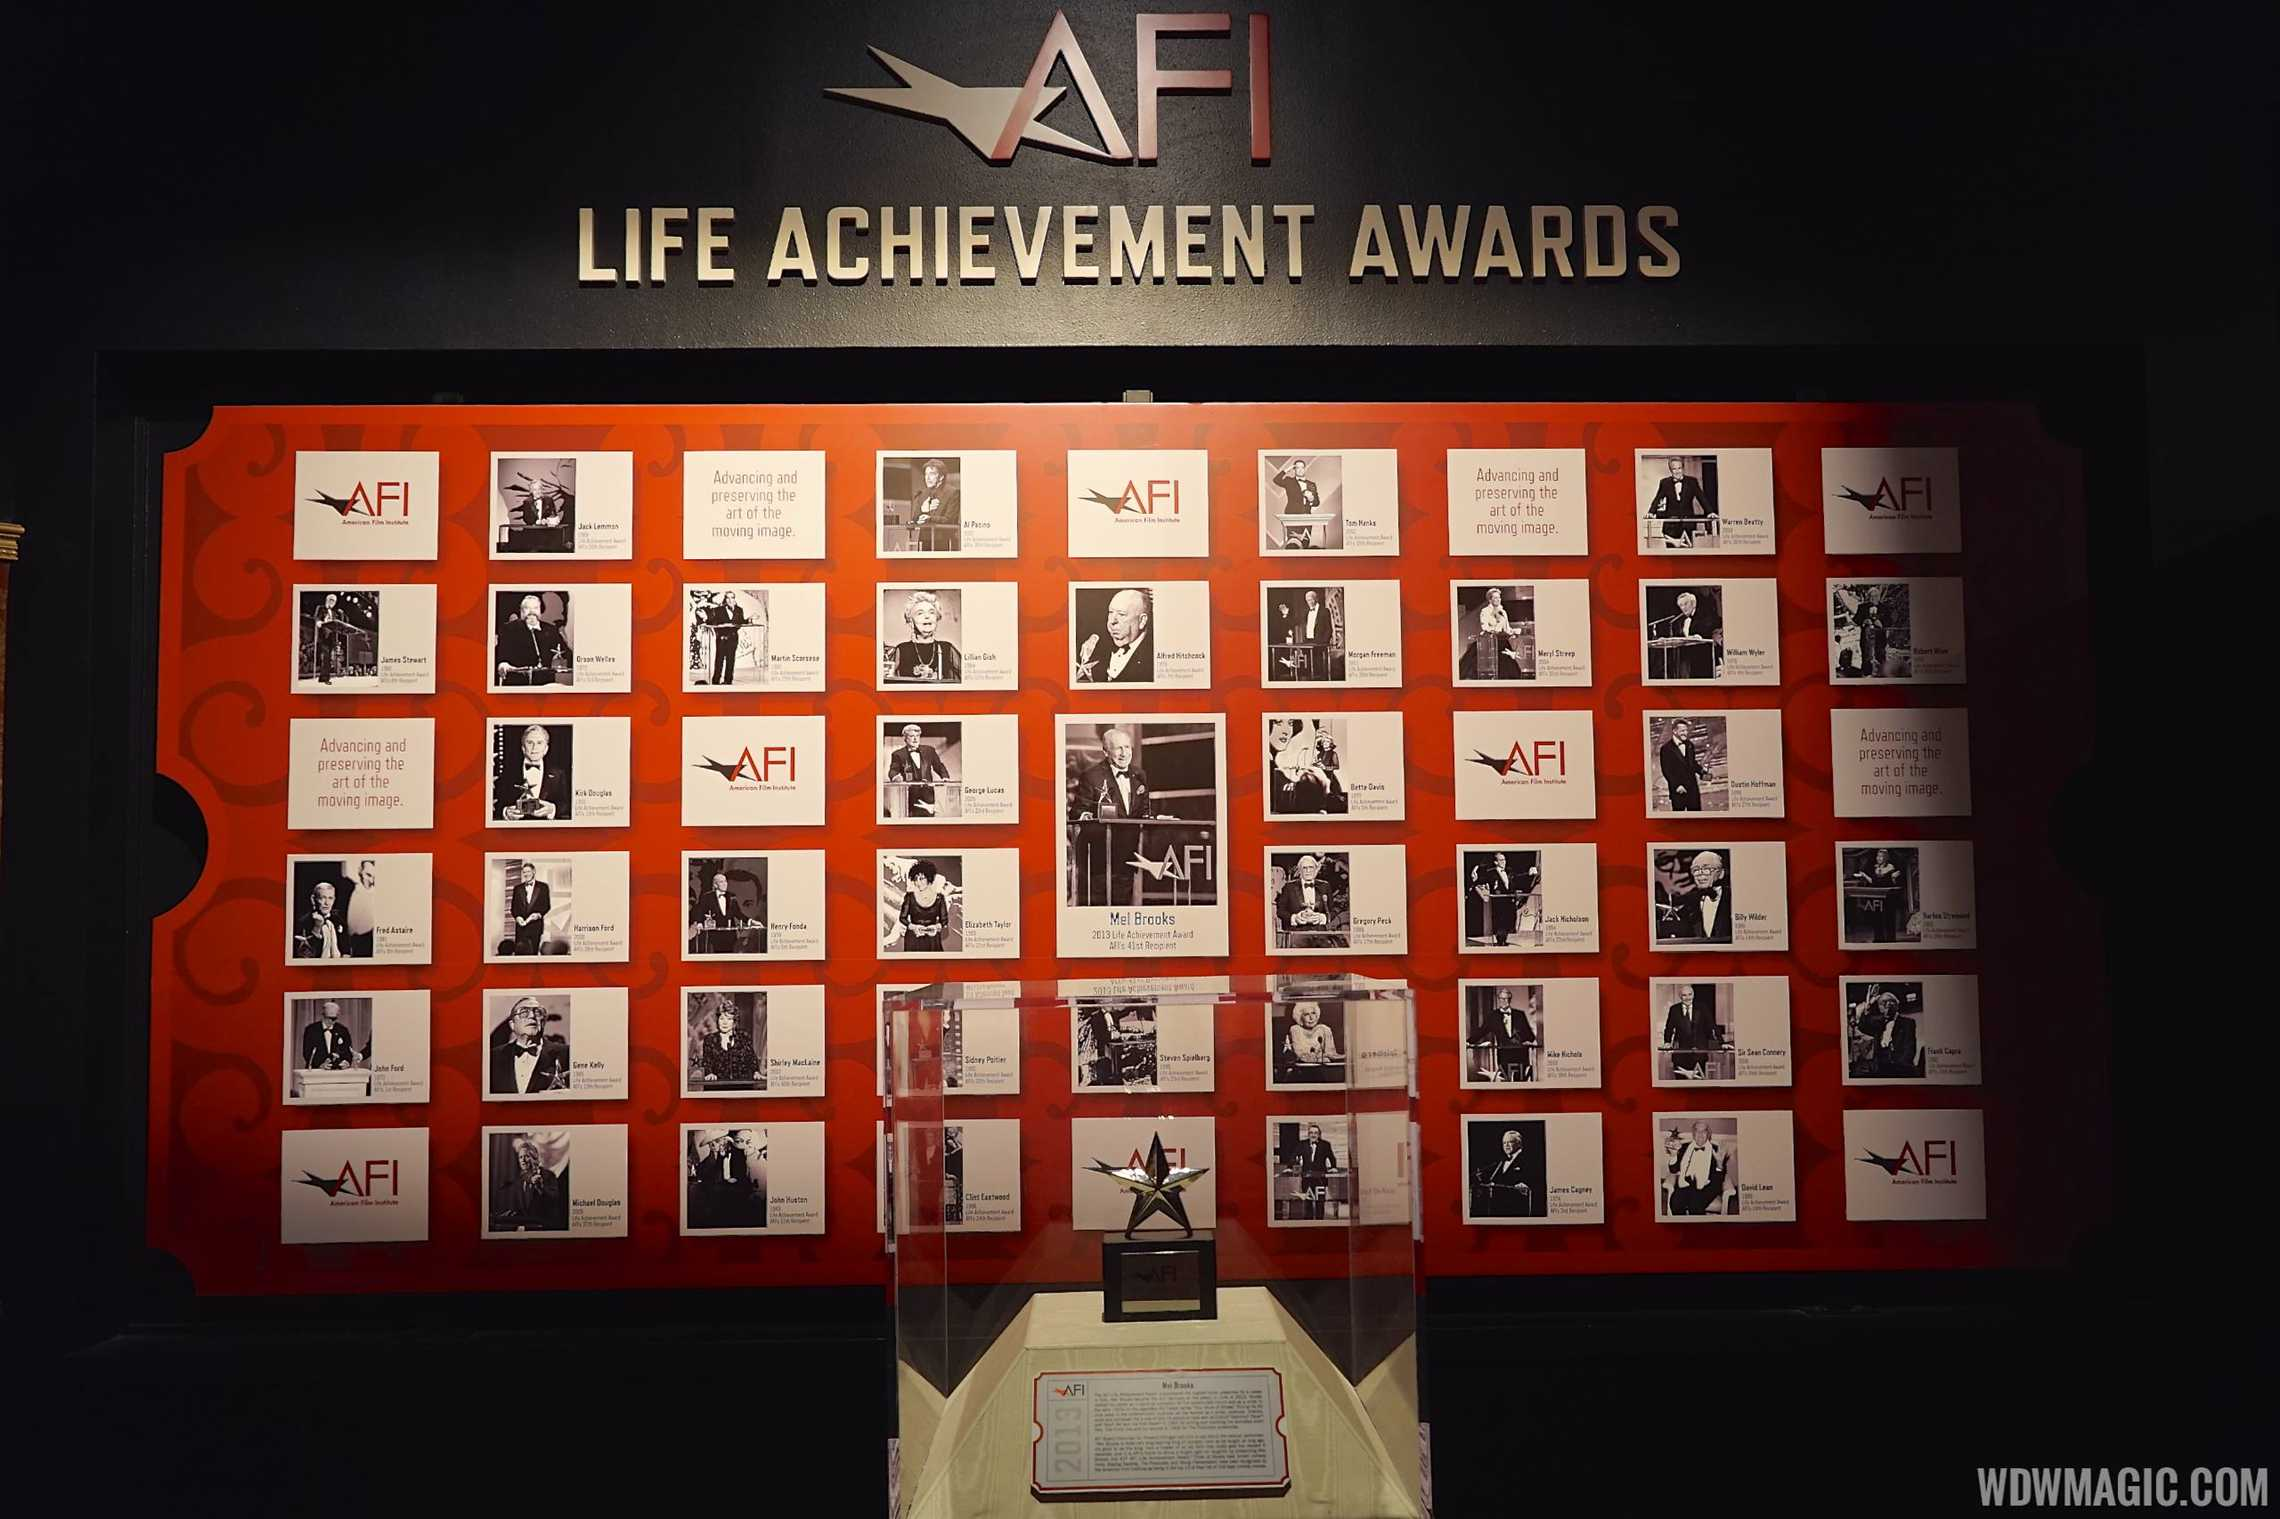 AFI exhibit - Life Achievement awards